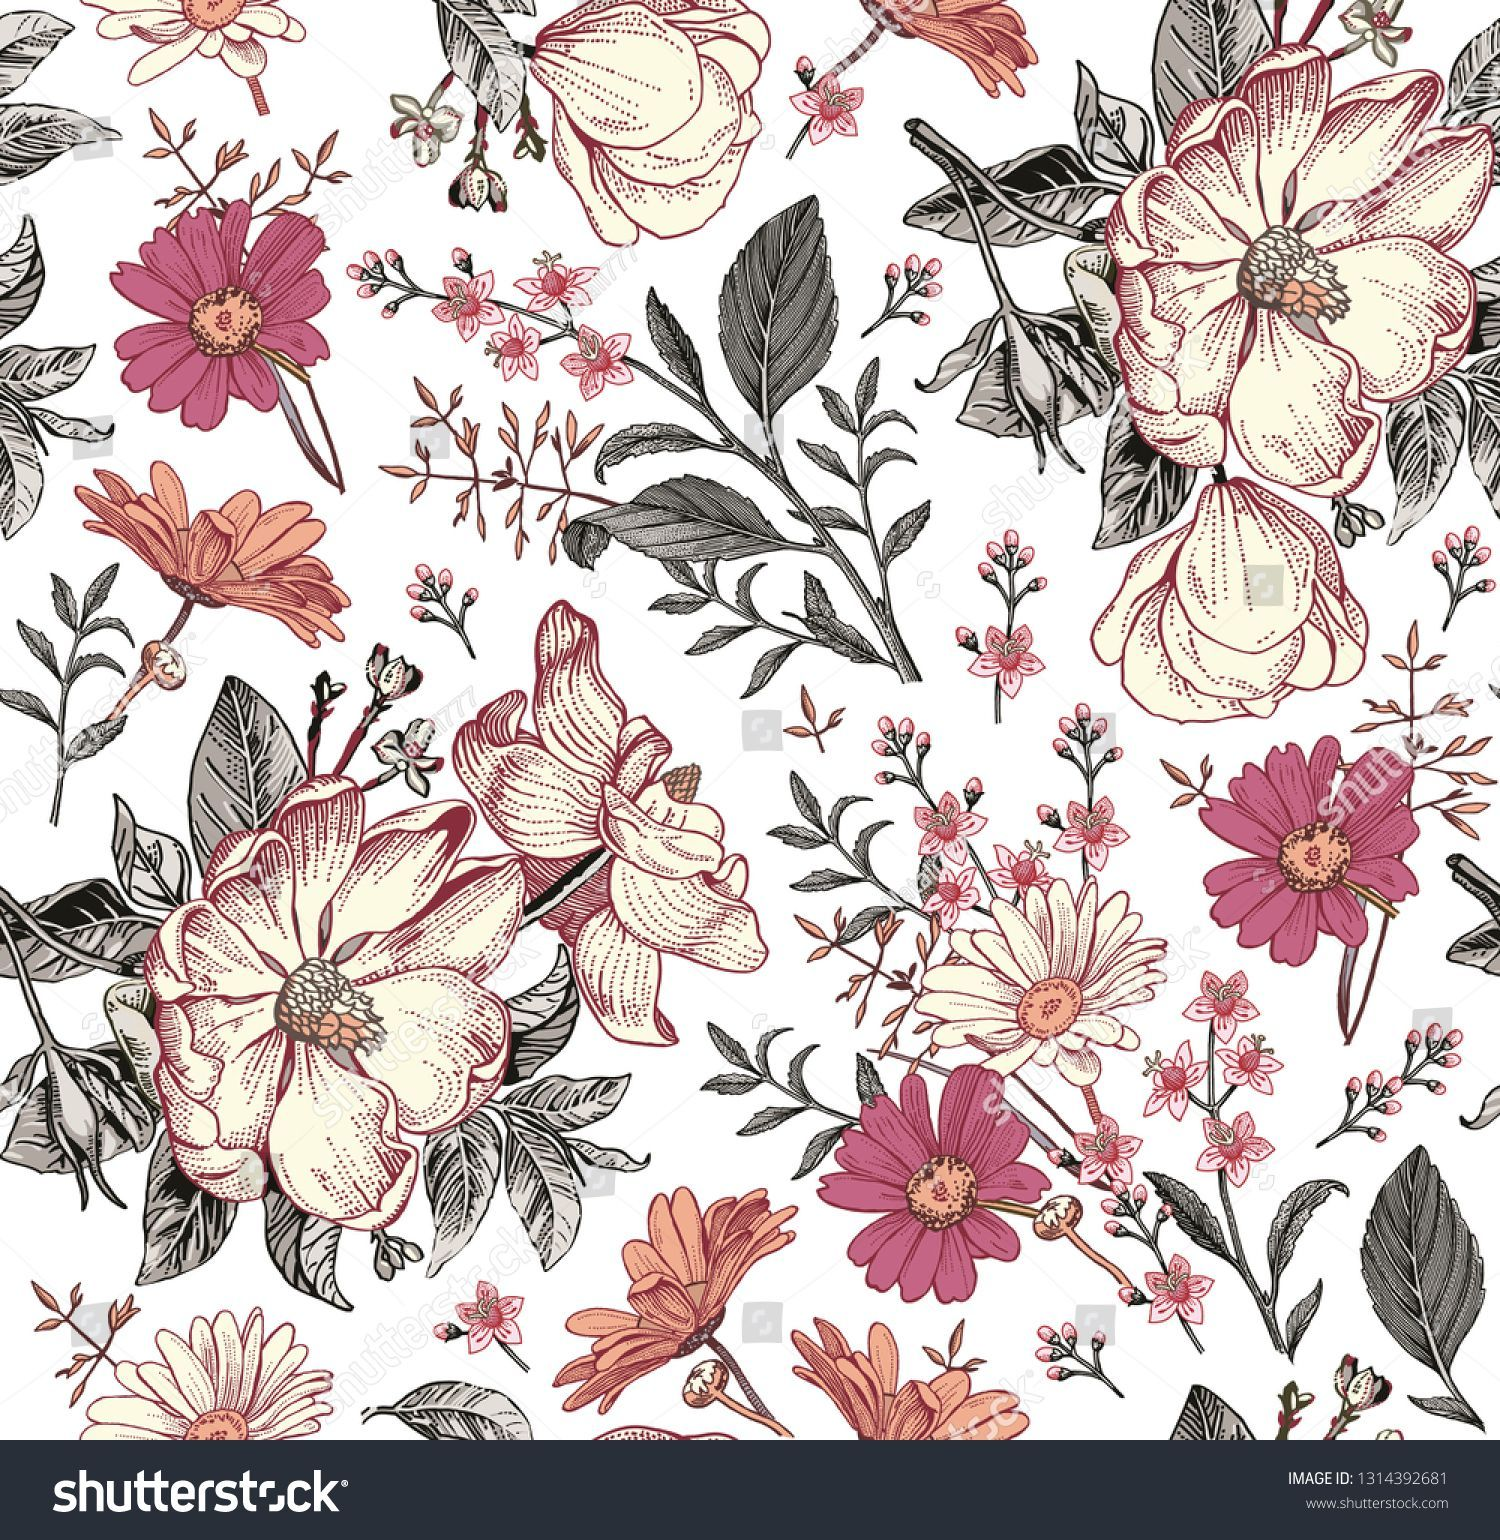 Seamless pattern Realistic blooming isolated flowers Vintage fabric background Rosehip dogrose brier chamomile croton wildflowers Wallpaper baroque Drawing engraving Vect...